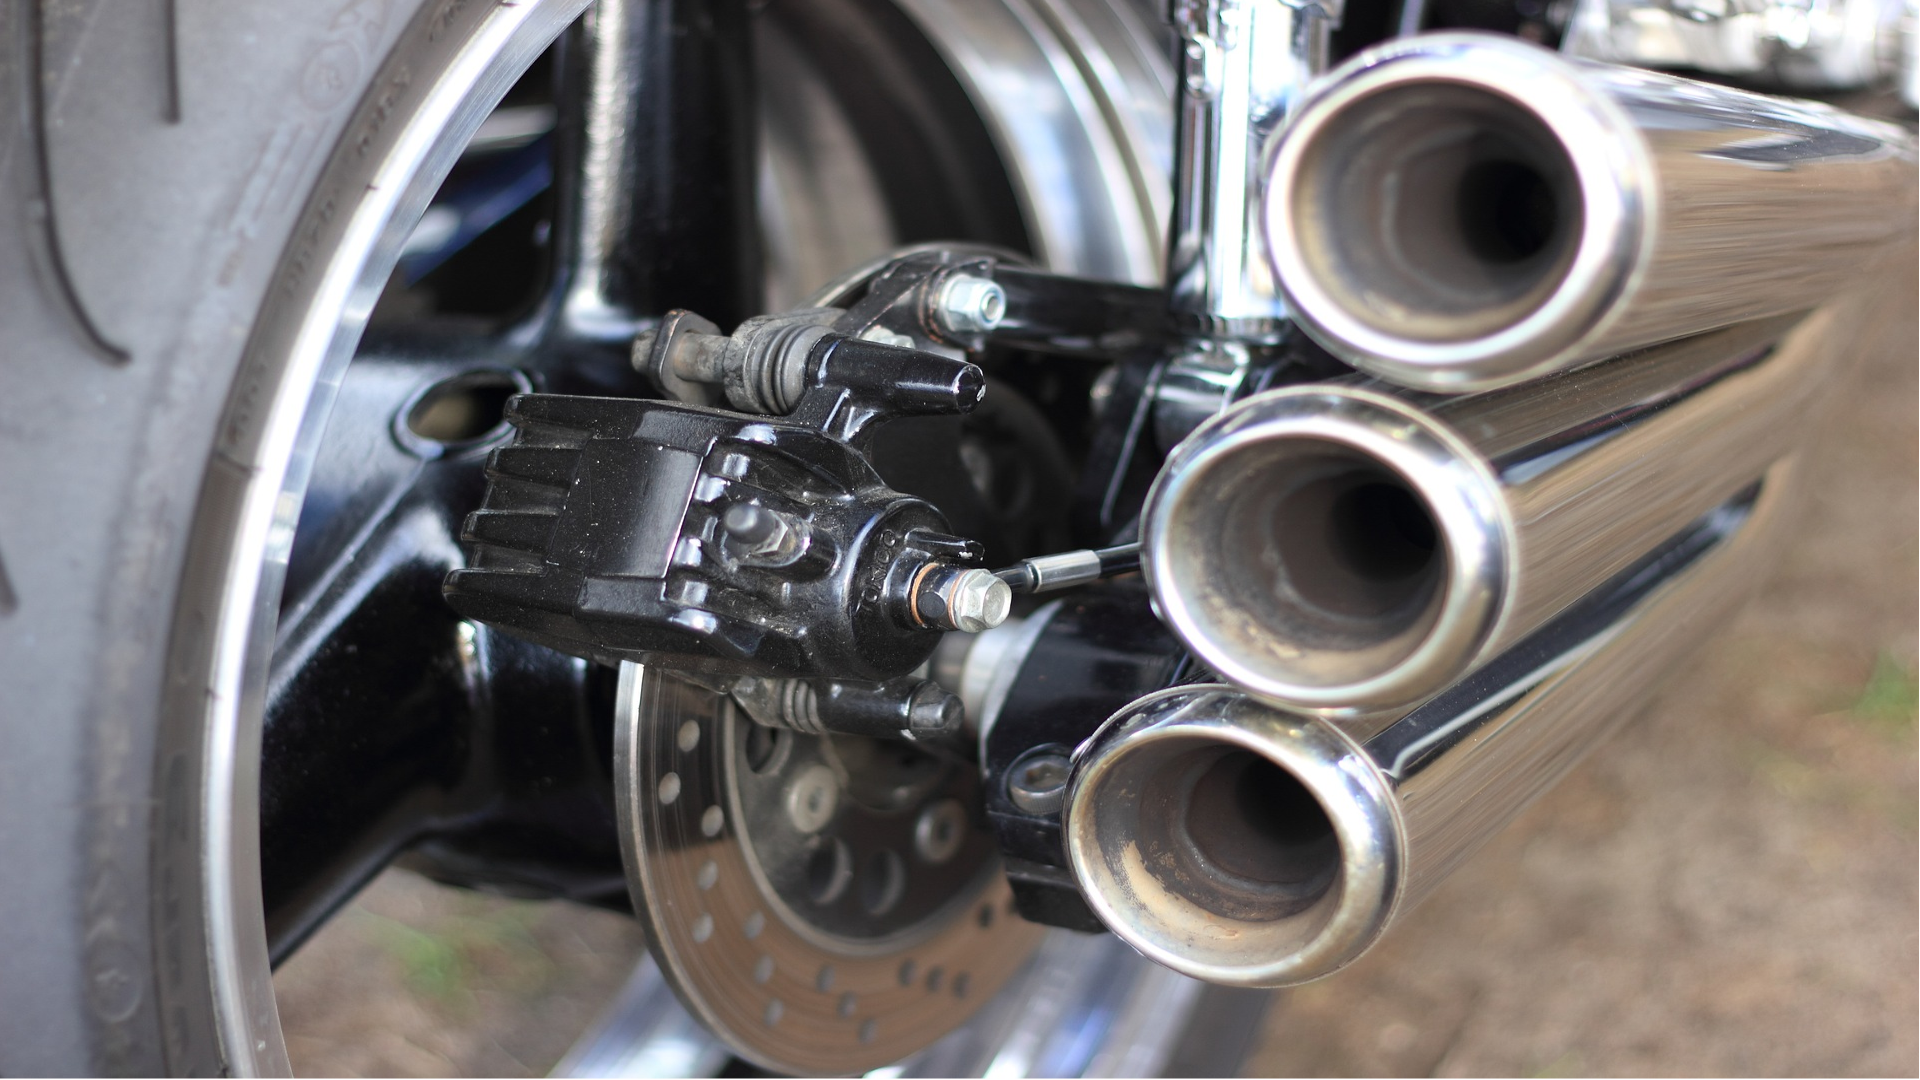 engine exhaust systems consist of many elements